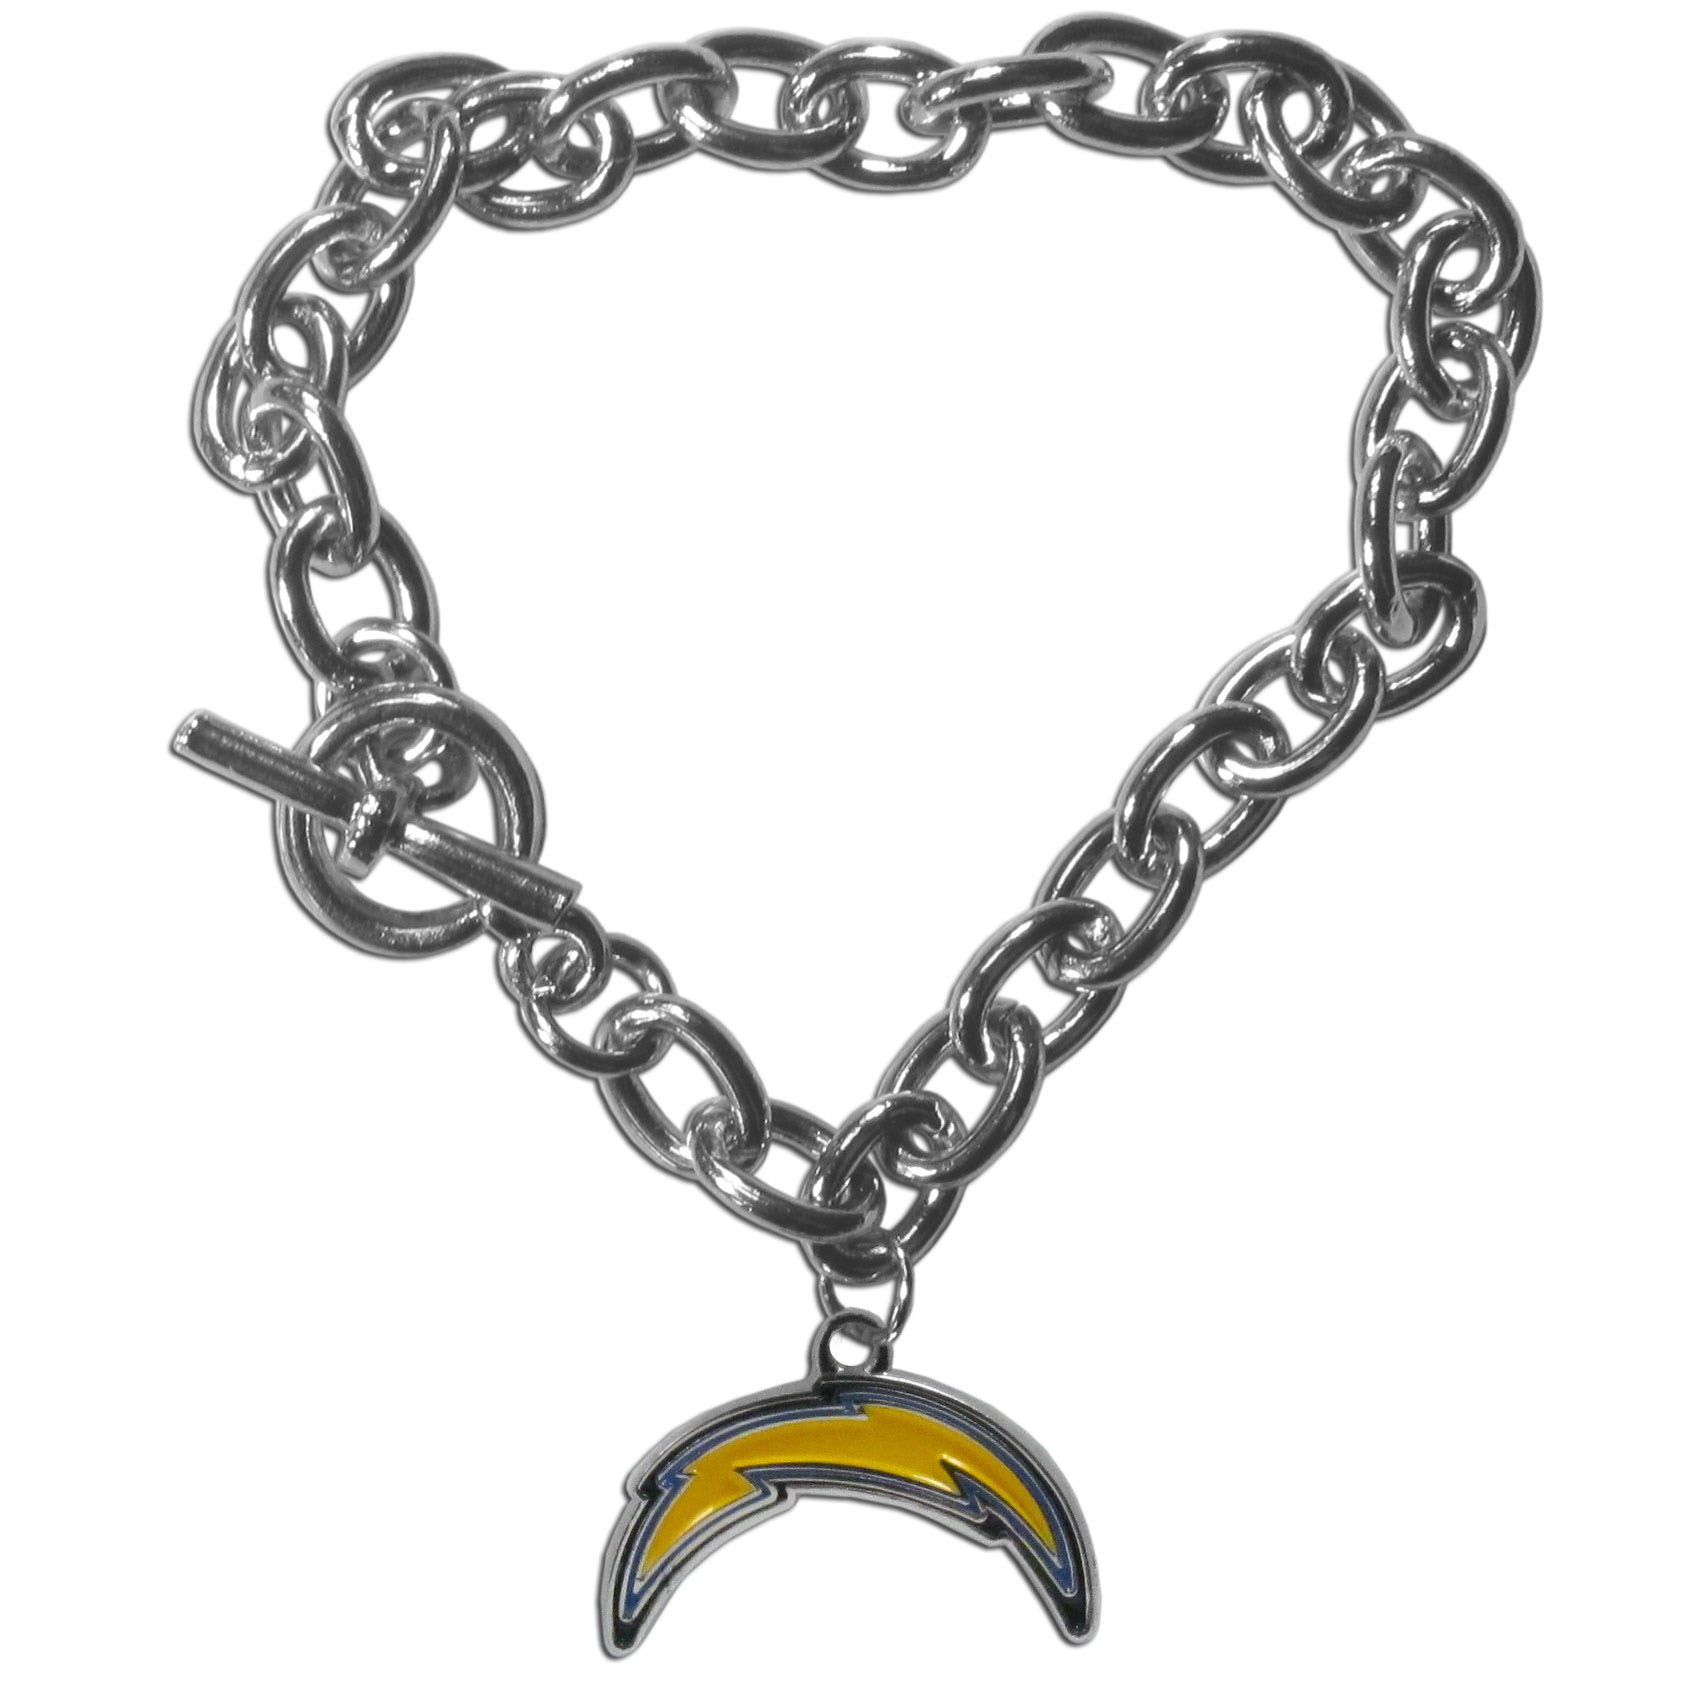 Los Angeles Chargers Charm Chain Bracelet - Our classic single charm bracelet is a great way to show off your team pride! The 7.5 inch large link chain features a high polish Los Angeles Chargers charm and features a toggle clasp which makes it super easy to take on and off.